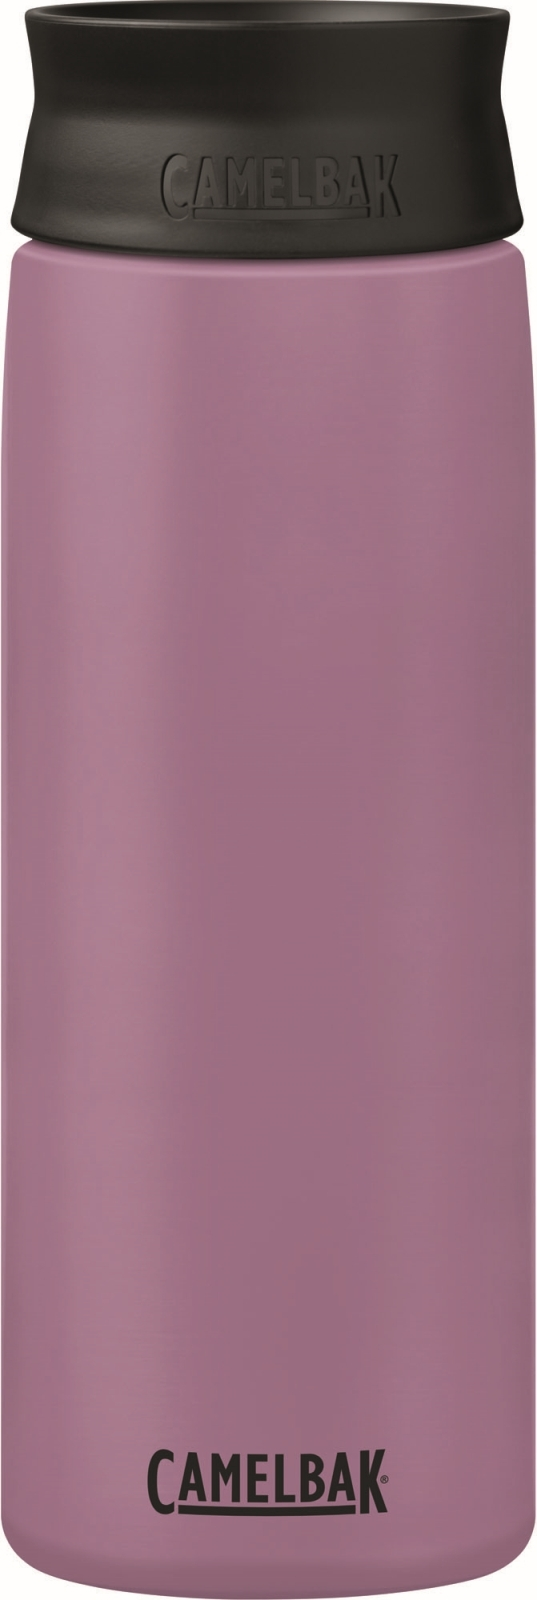 Camelbak Hot Cap Vacuum Stainless 0,6l - Light Purple uni